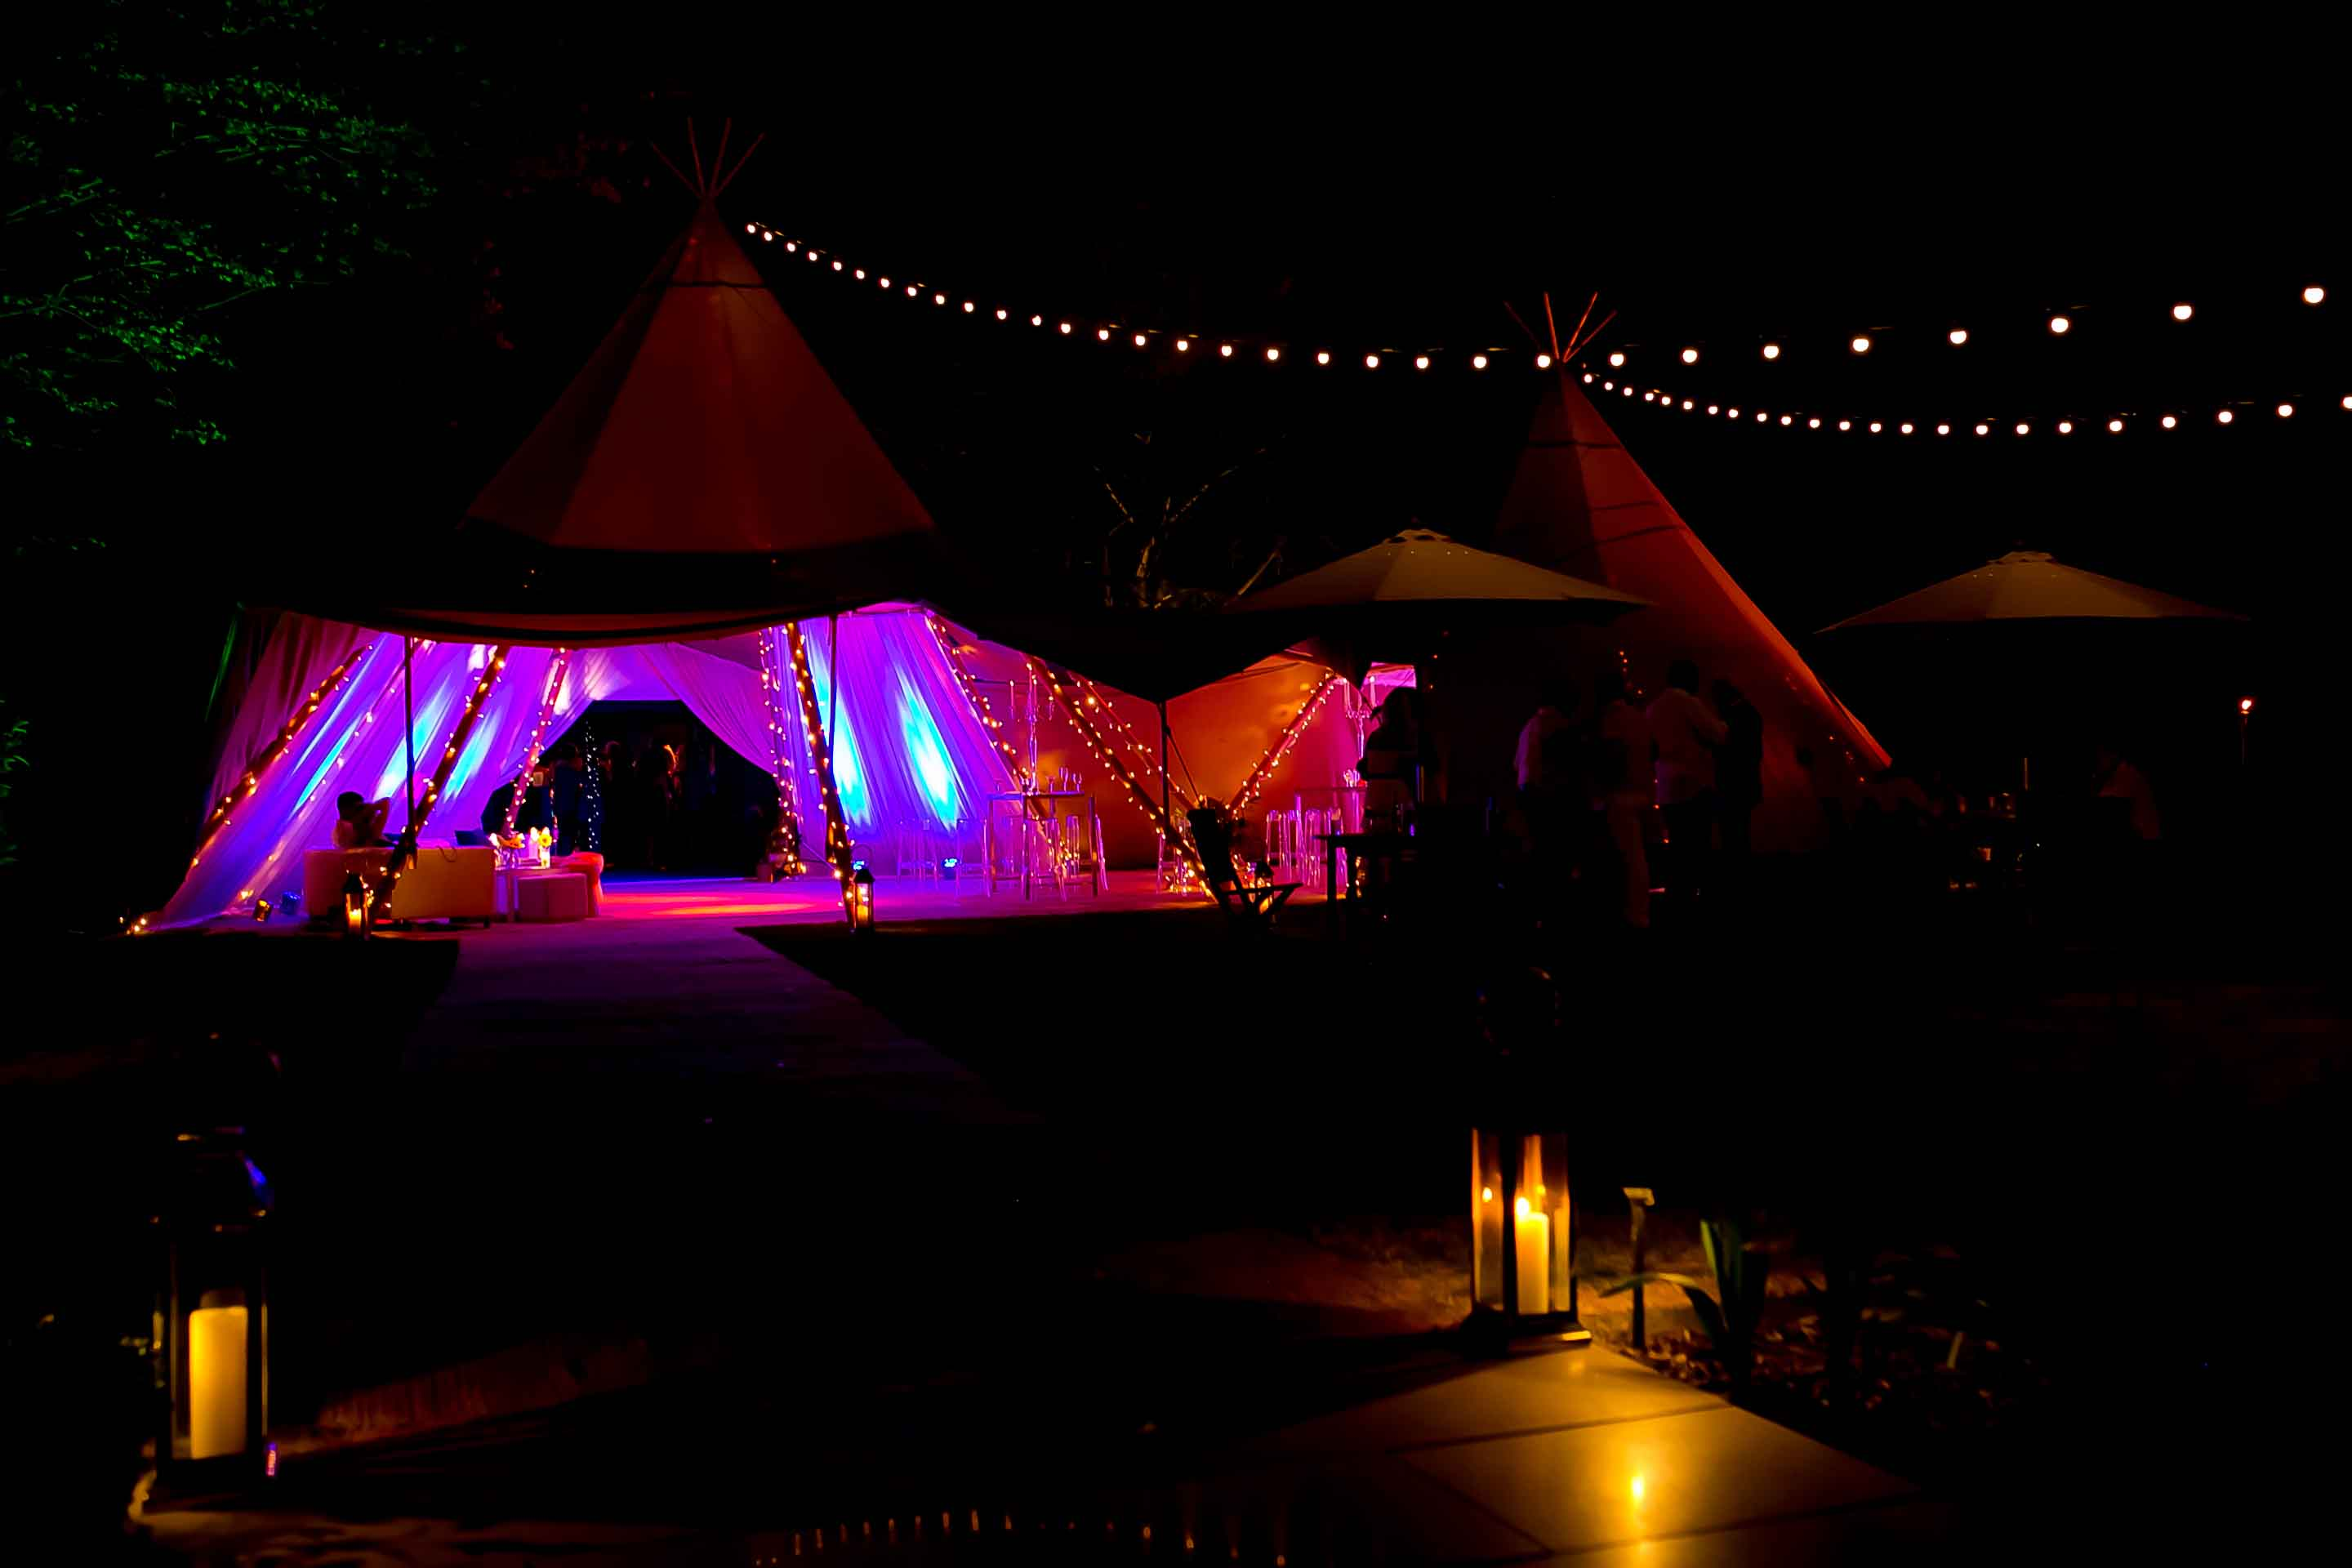 Giant hat tipi's by night with festoon lighting